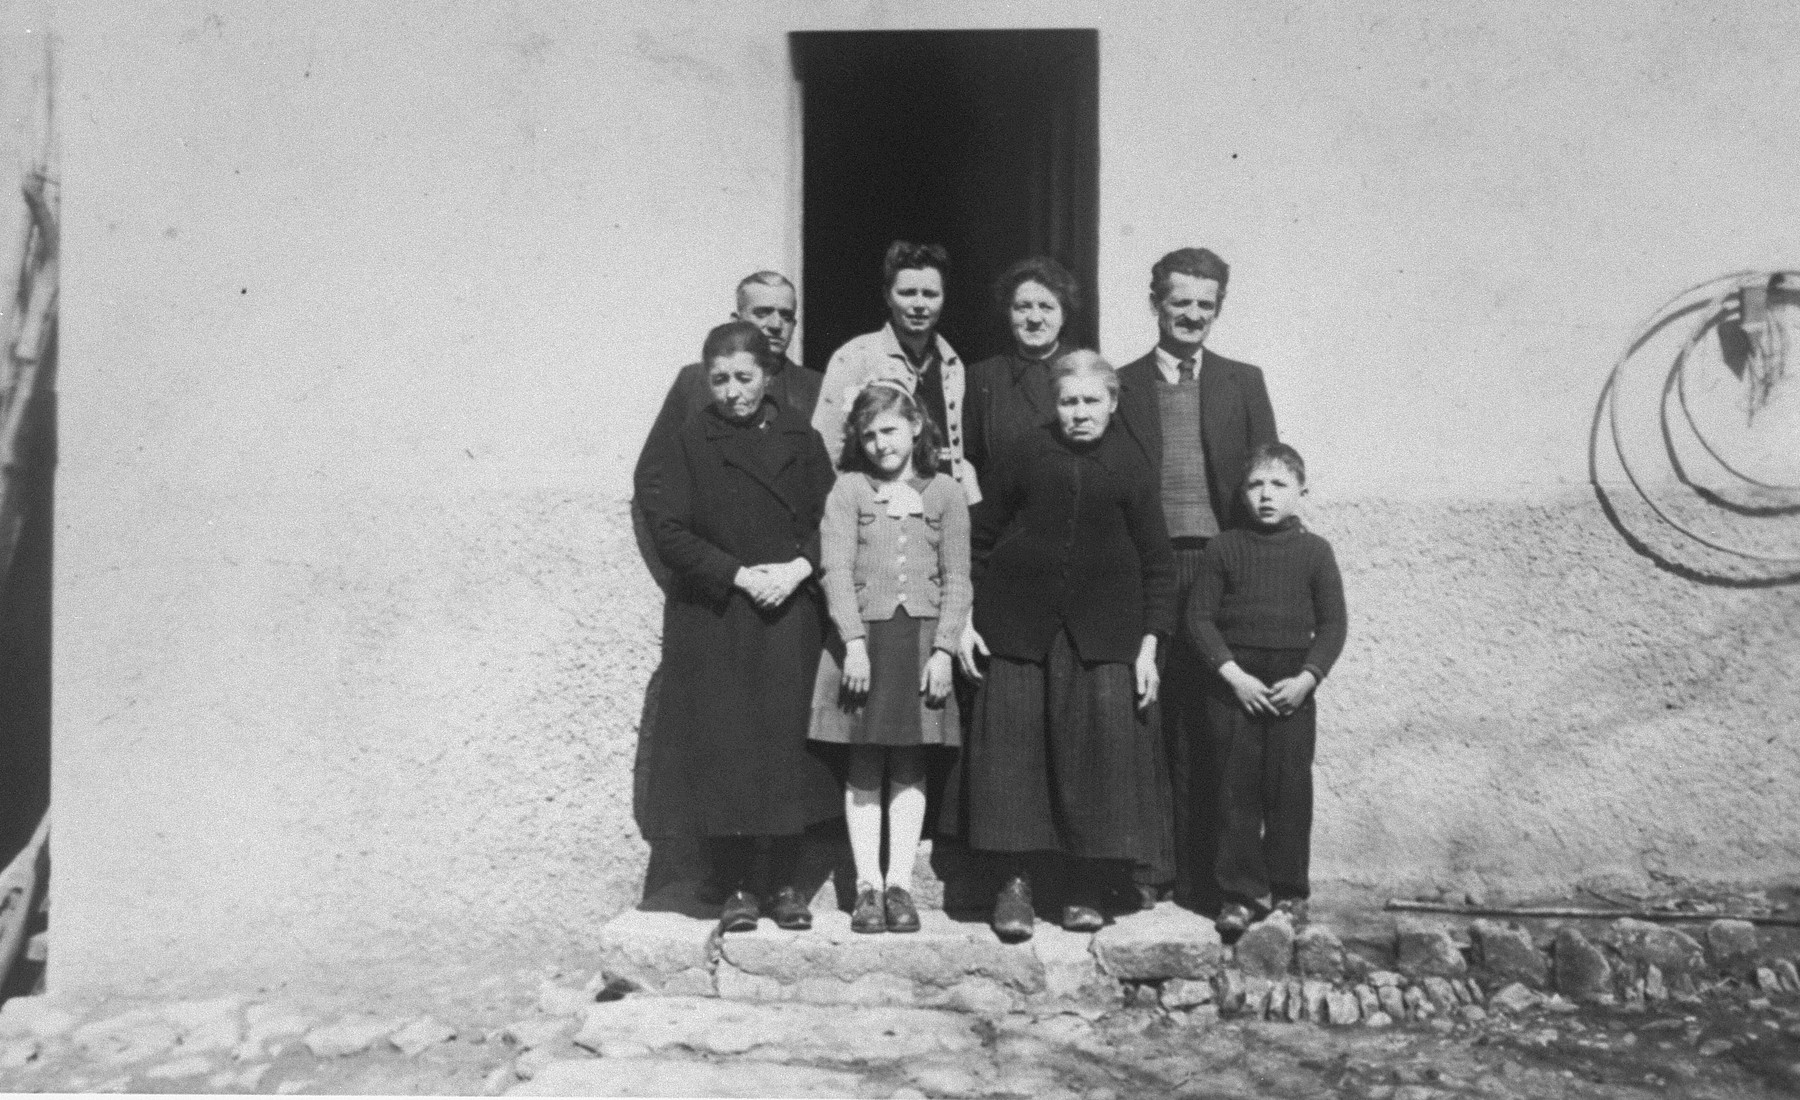 Berthe Lewkowitz (front, second from left), and her brother, Jacques (front right), with their rescuers, Victor and Josephine Guicherd (back right).